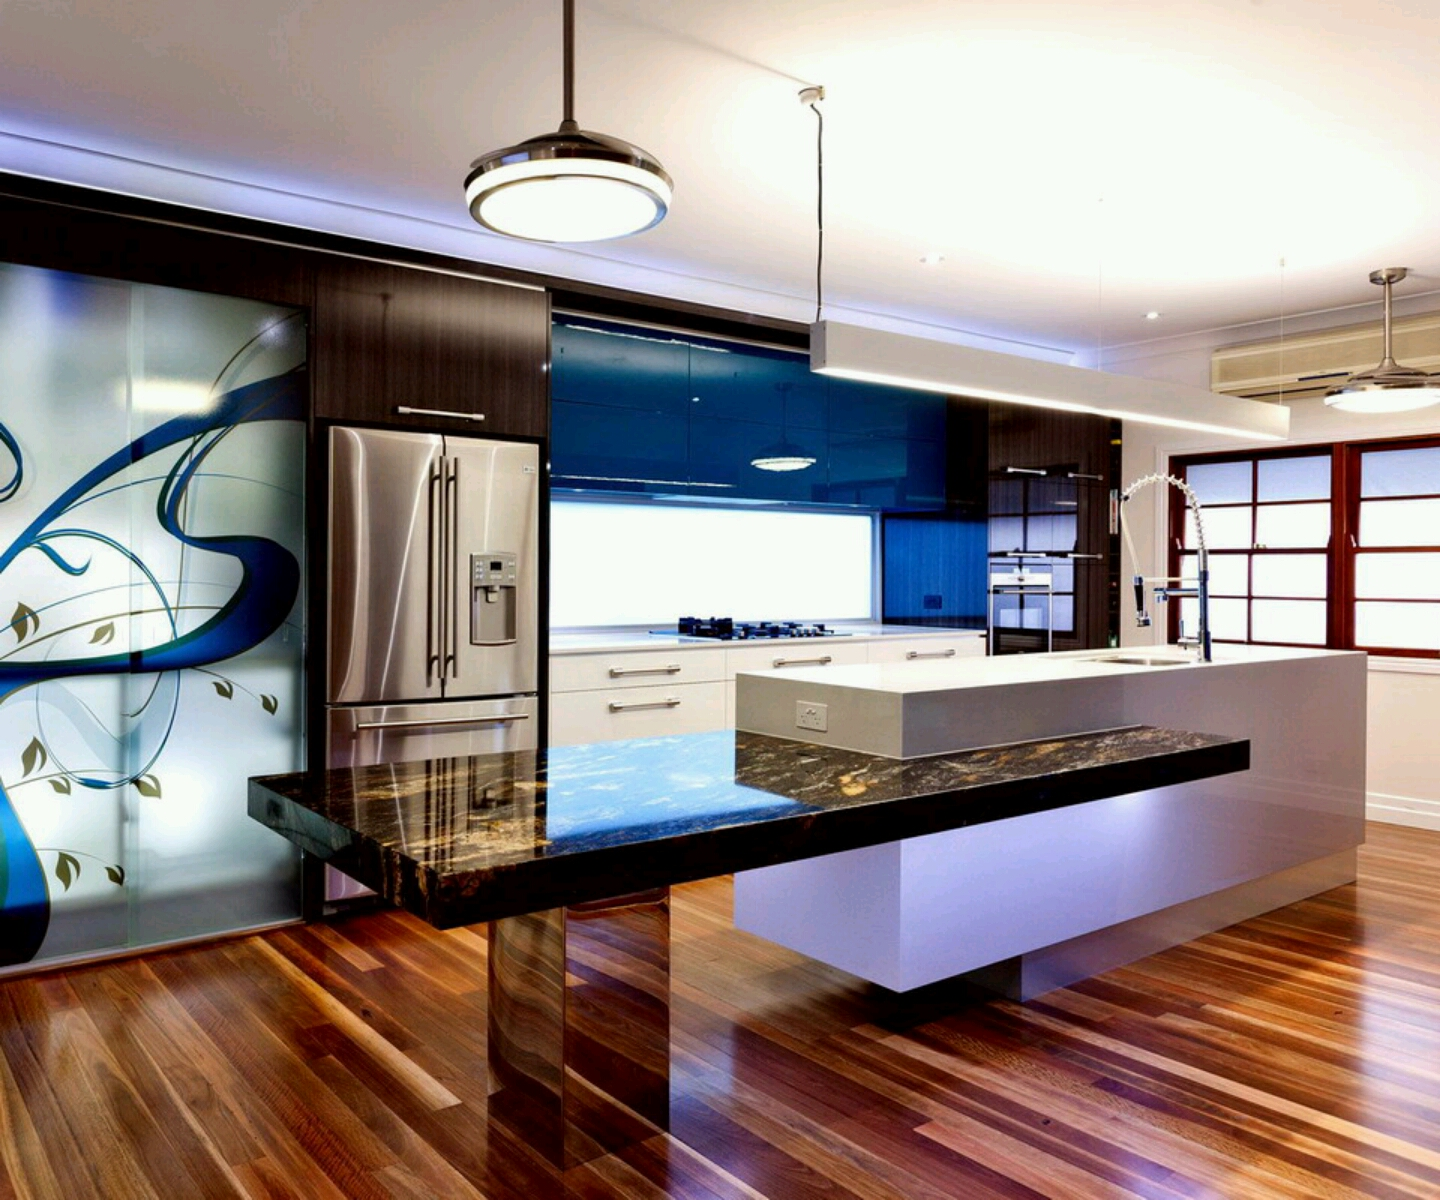 Ultra modern kitchen designs ideas new home designs for Best modern kitchen design